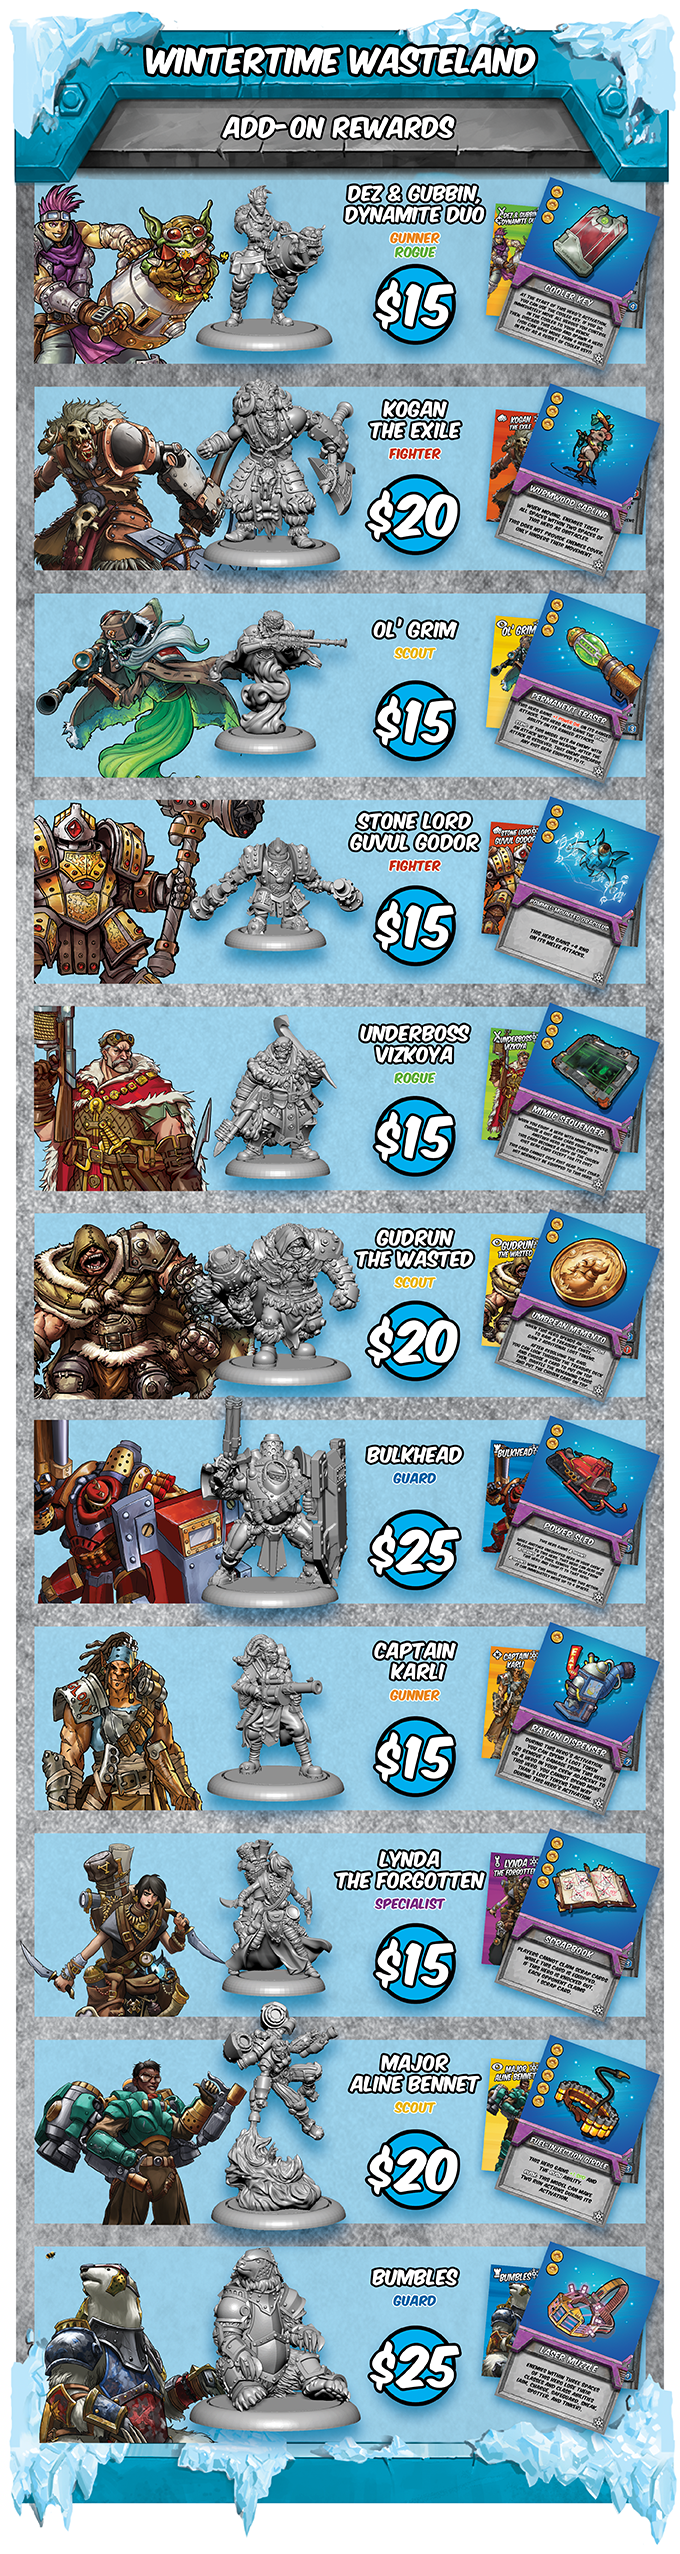 Riot Quest Winter Wasteland Add-Ons - Privateer Press.png